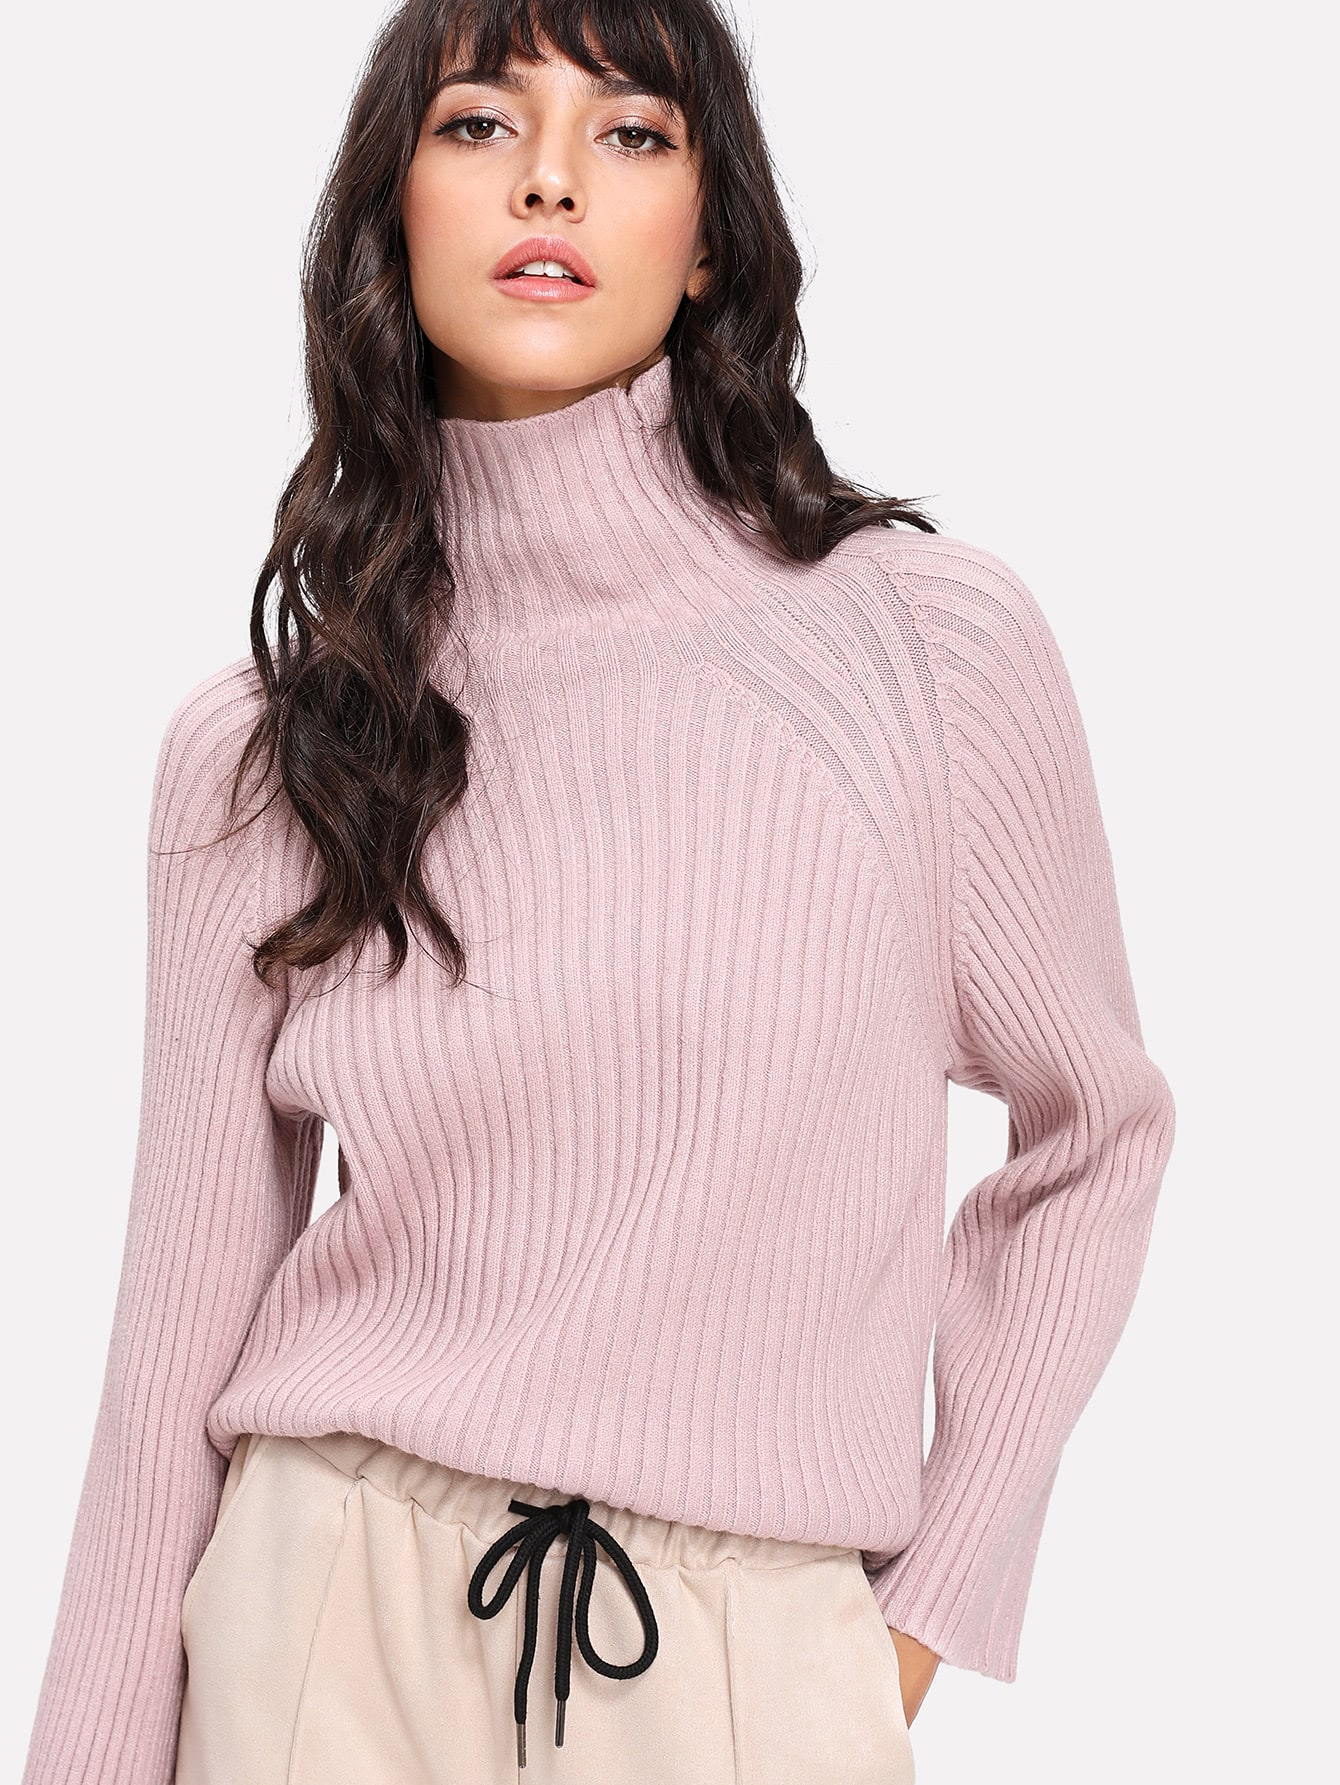 High Neck Raglan Sleeve Knit Sweater -SheIn(Sheinside)